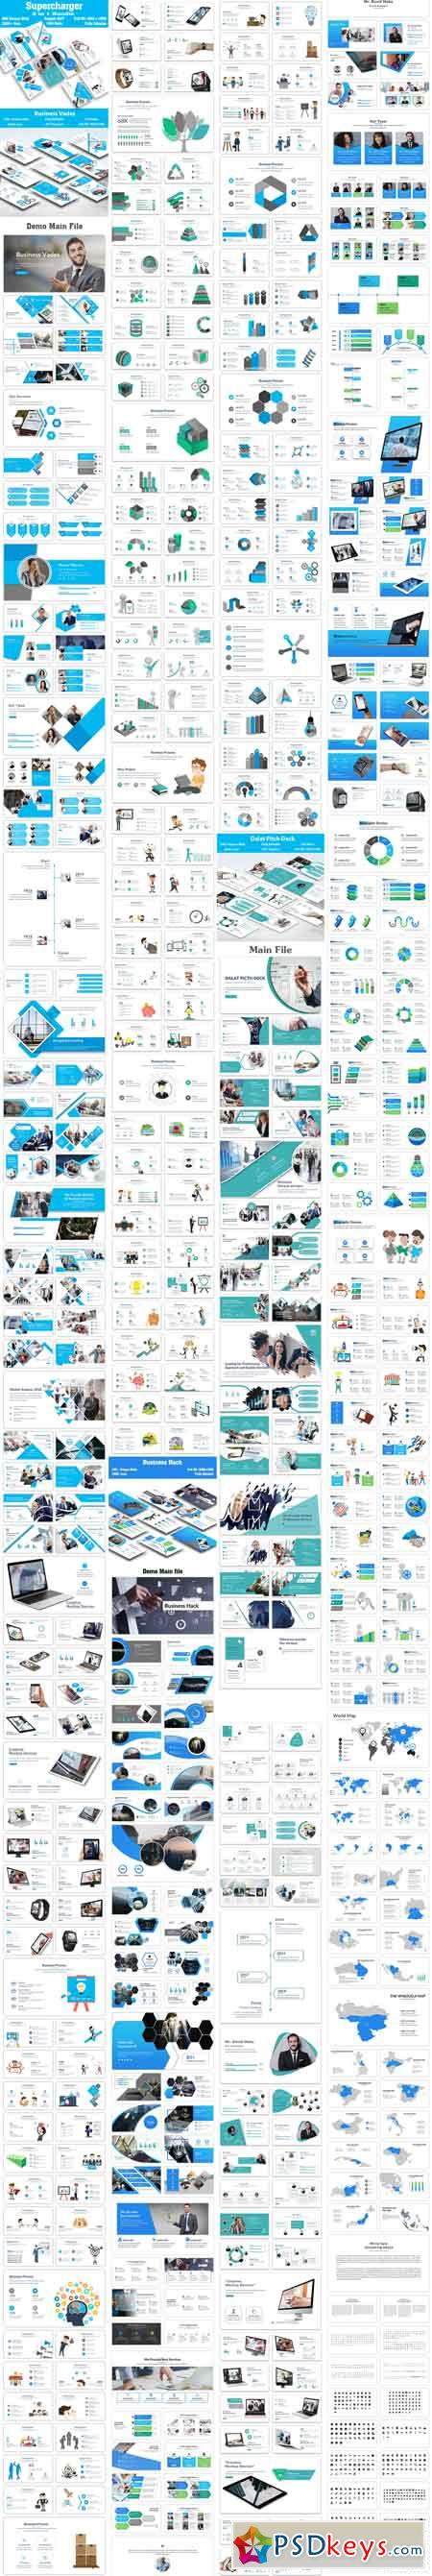 Bundle Business Supercharger 3 in 1 PowerPoint Template 22606019